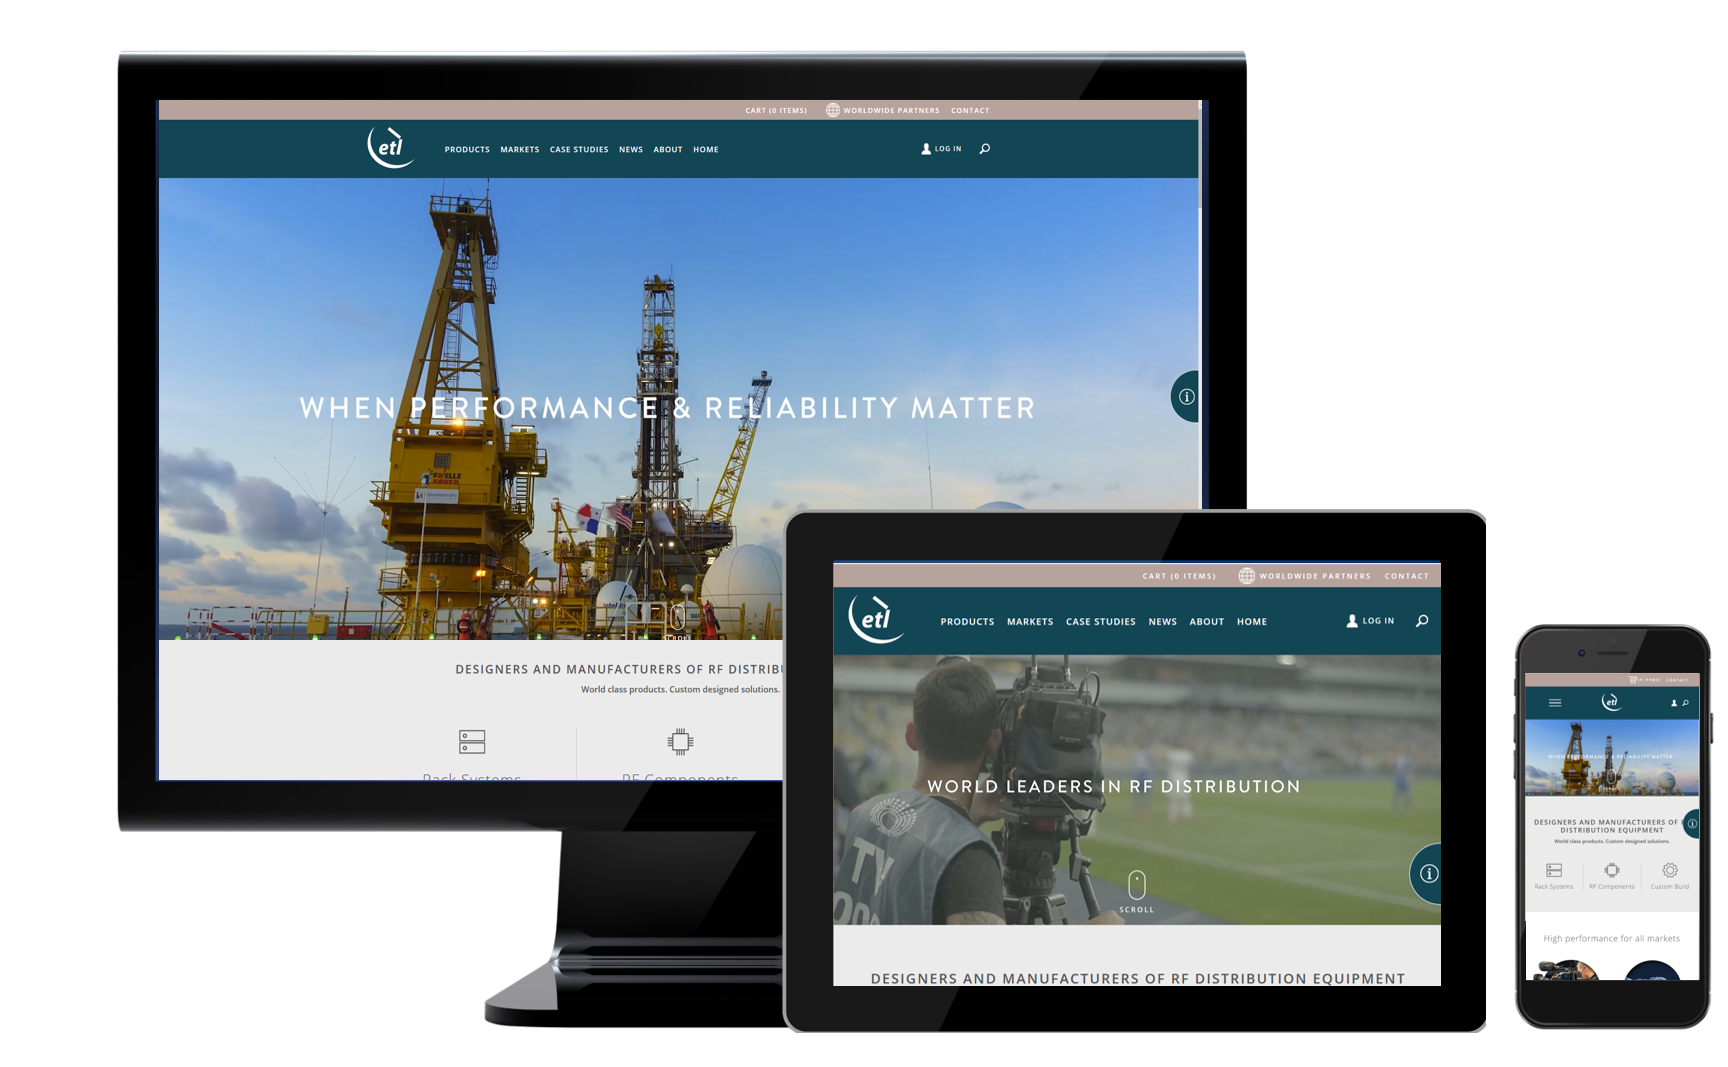 ETL's new website has responsive design